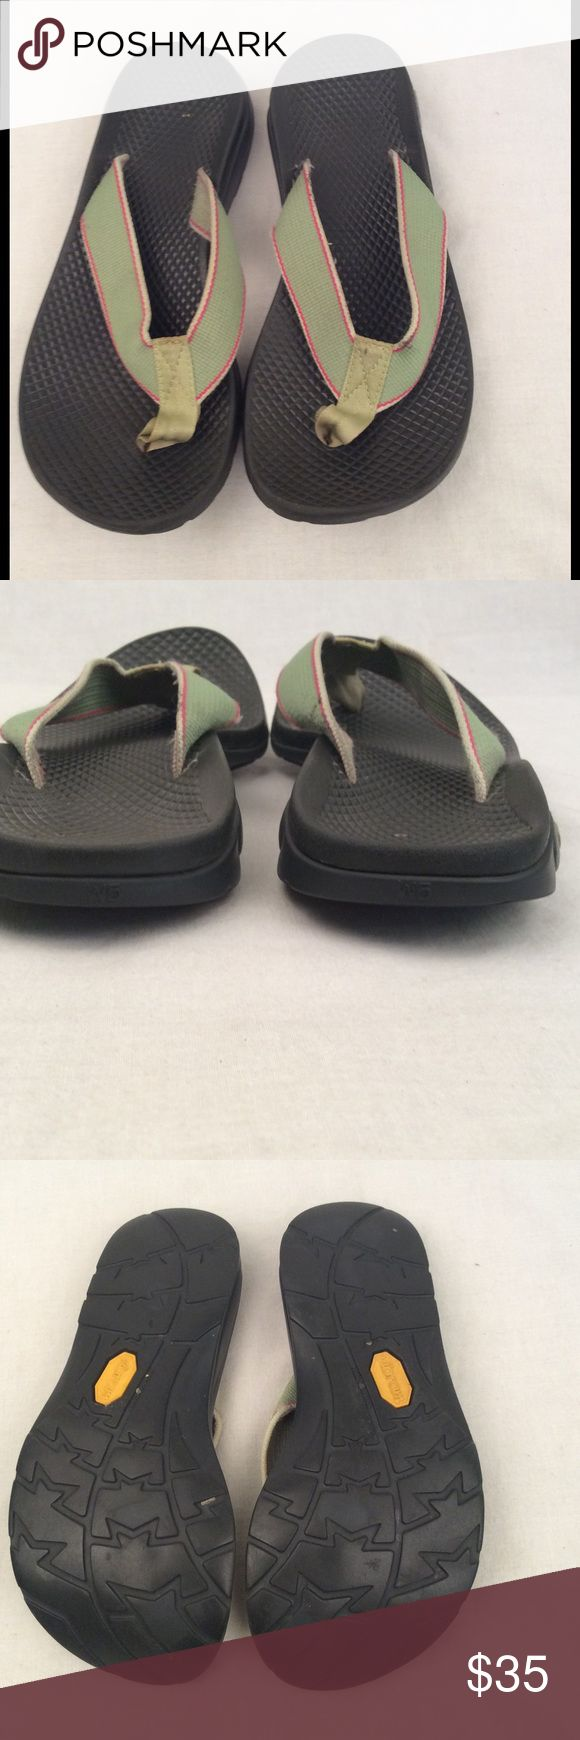 Women's Chaco Flip Flops Women's size 5 Chaco flip flops green outlined in pink, in excellent condition & comes from a smoke free home. ✅Reasonable offers considered  ✅Bundle for a discount & save on shipping  ✅Same/next day shipping Chaco Shoes Sandals